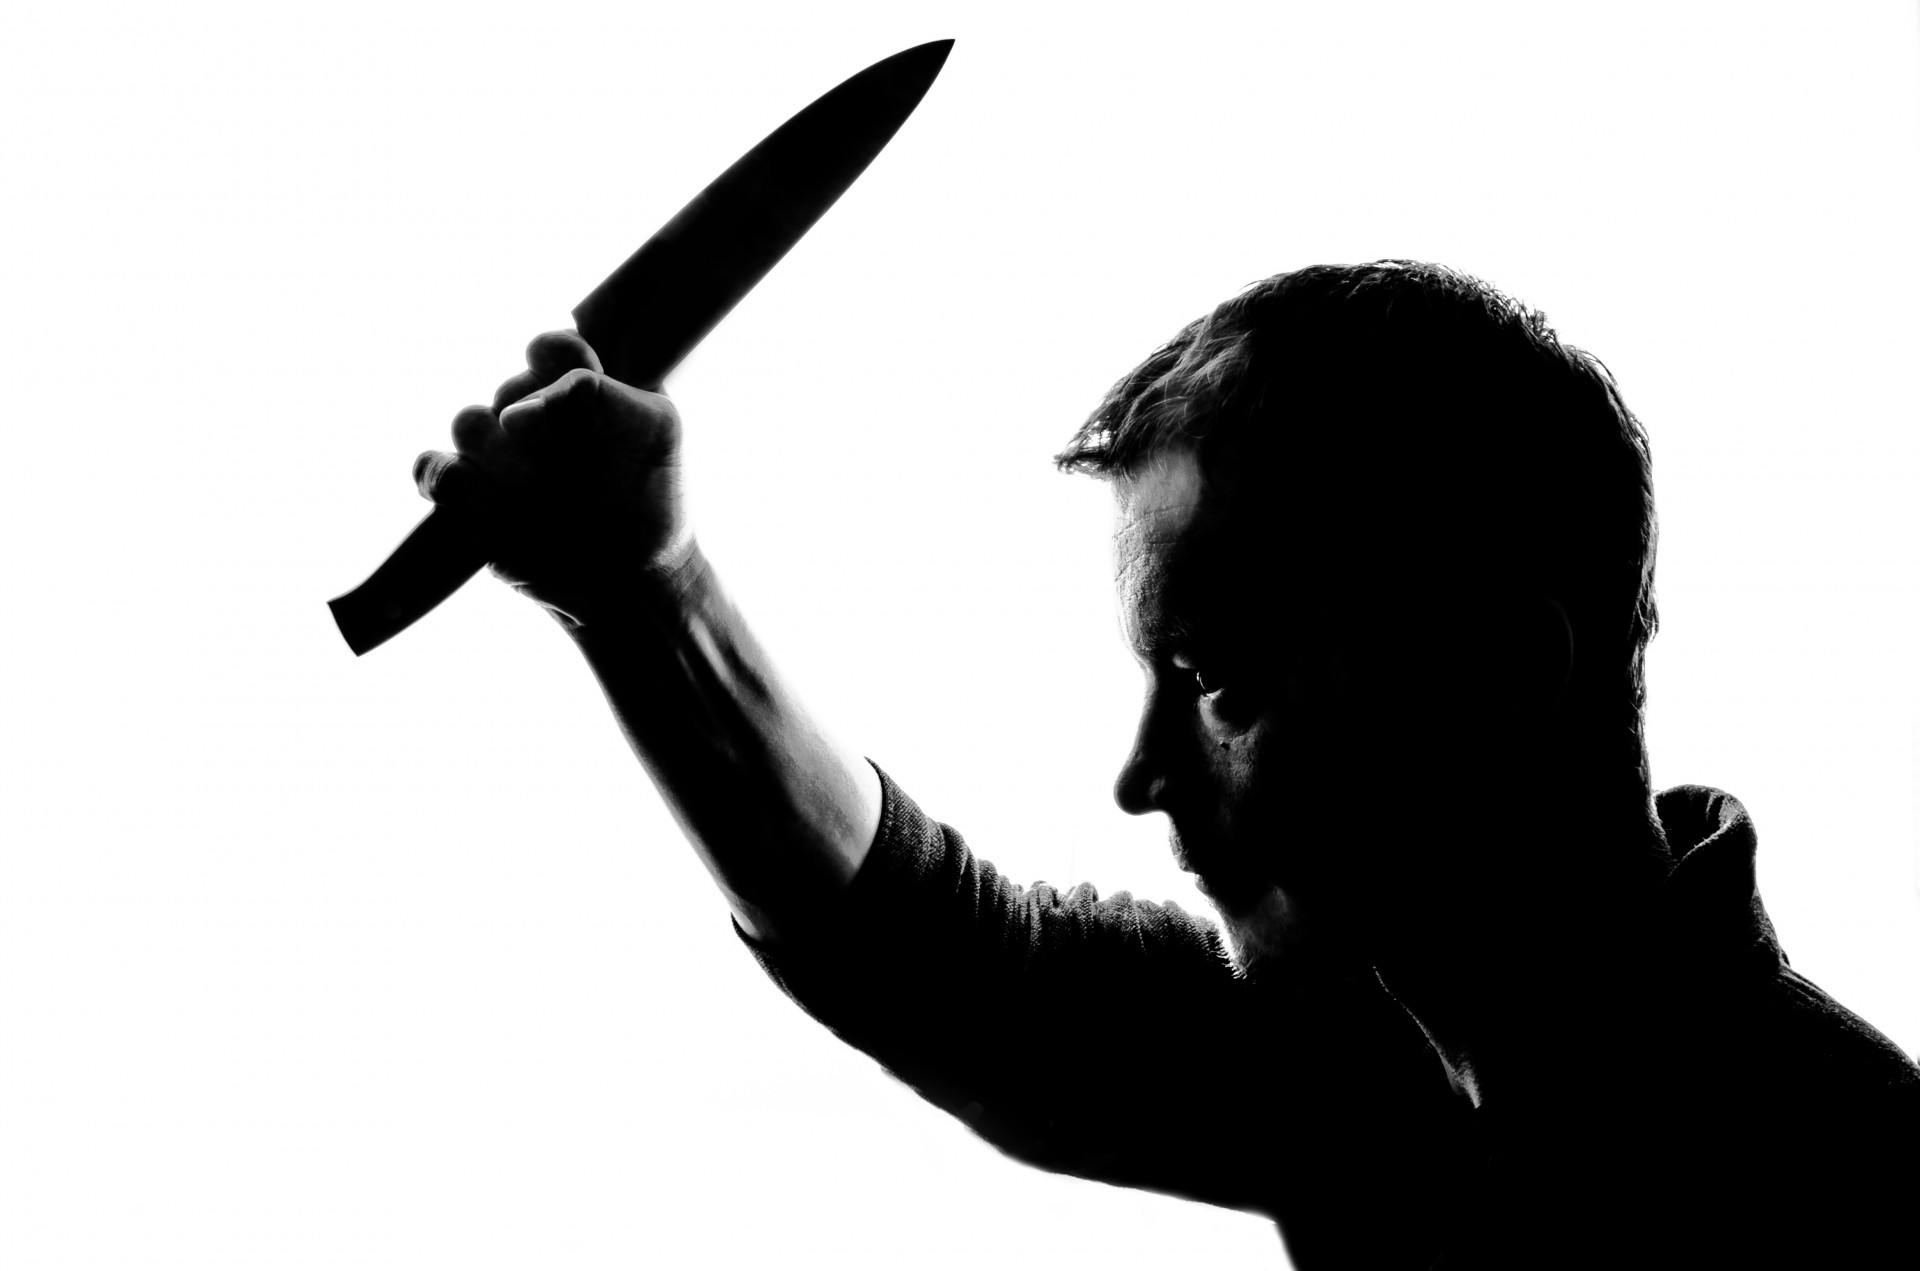 1920x1271 Horror Silhouette Of Man With Knife Free Stock Photo